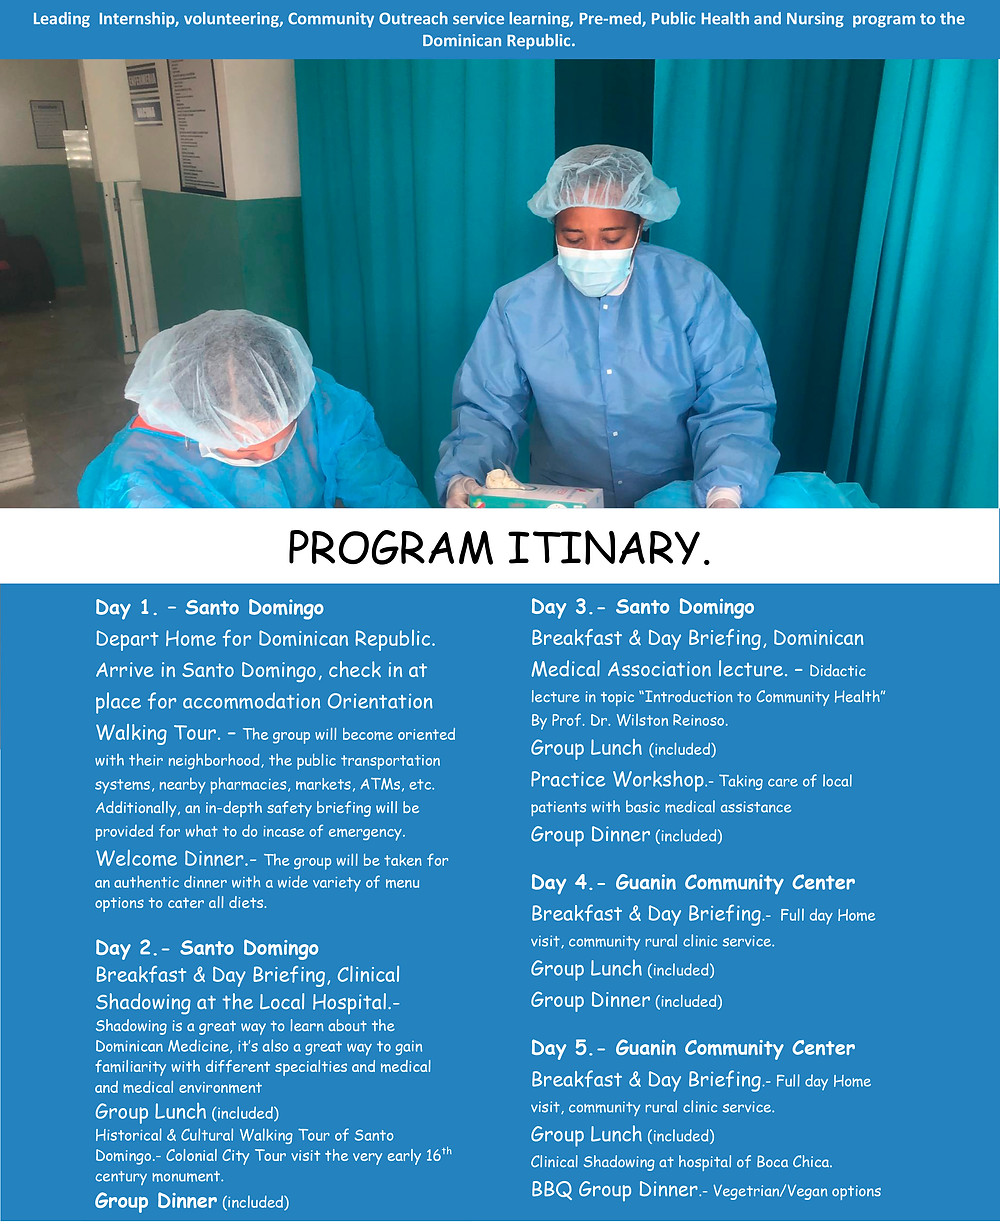 Program Itinary, 8 days and 7 nights, Guanin / SAS Program